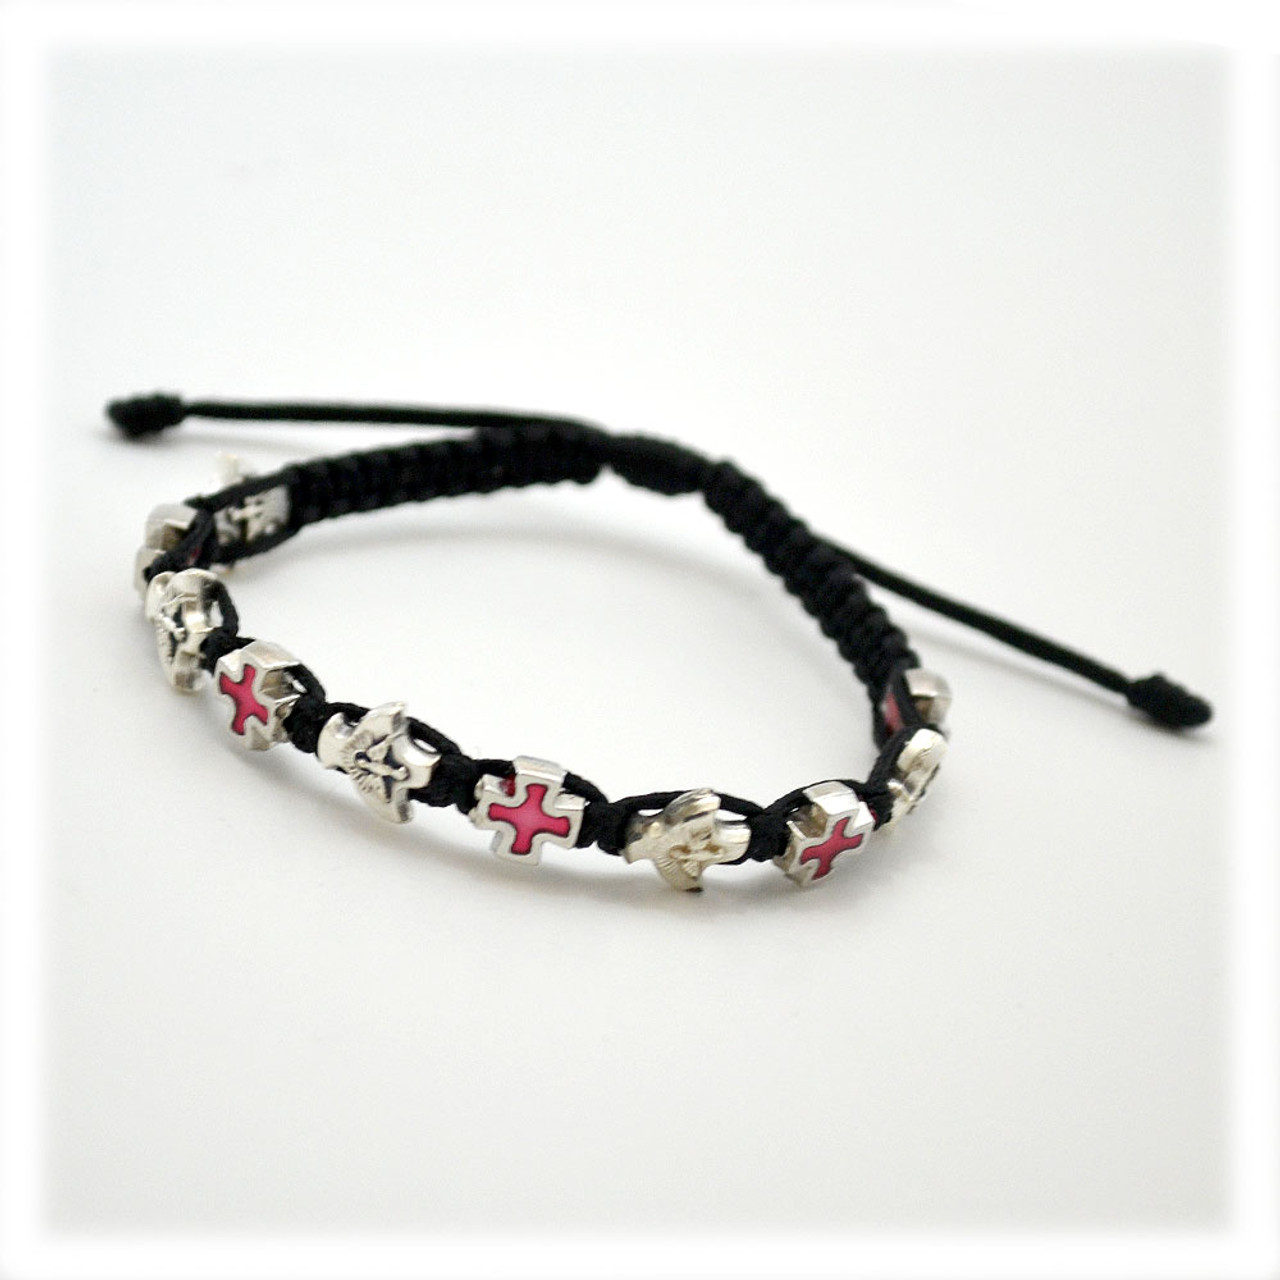 Corded Confirmation Bracelet in Black